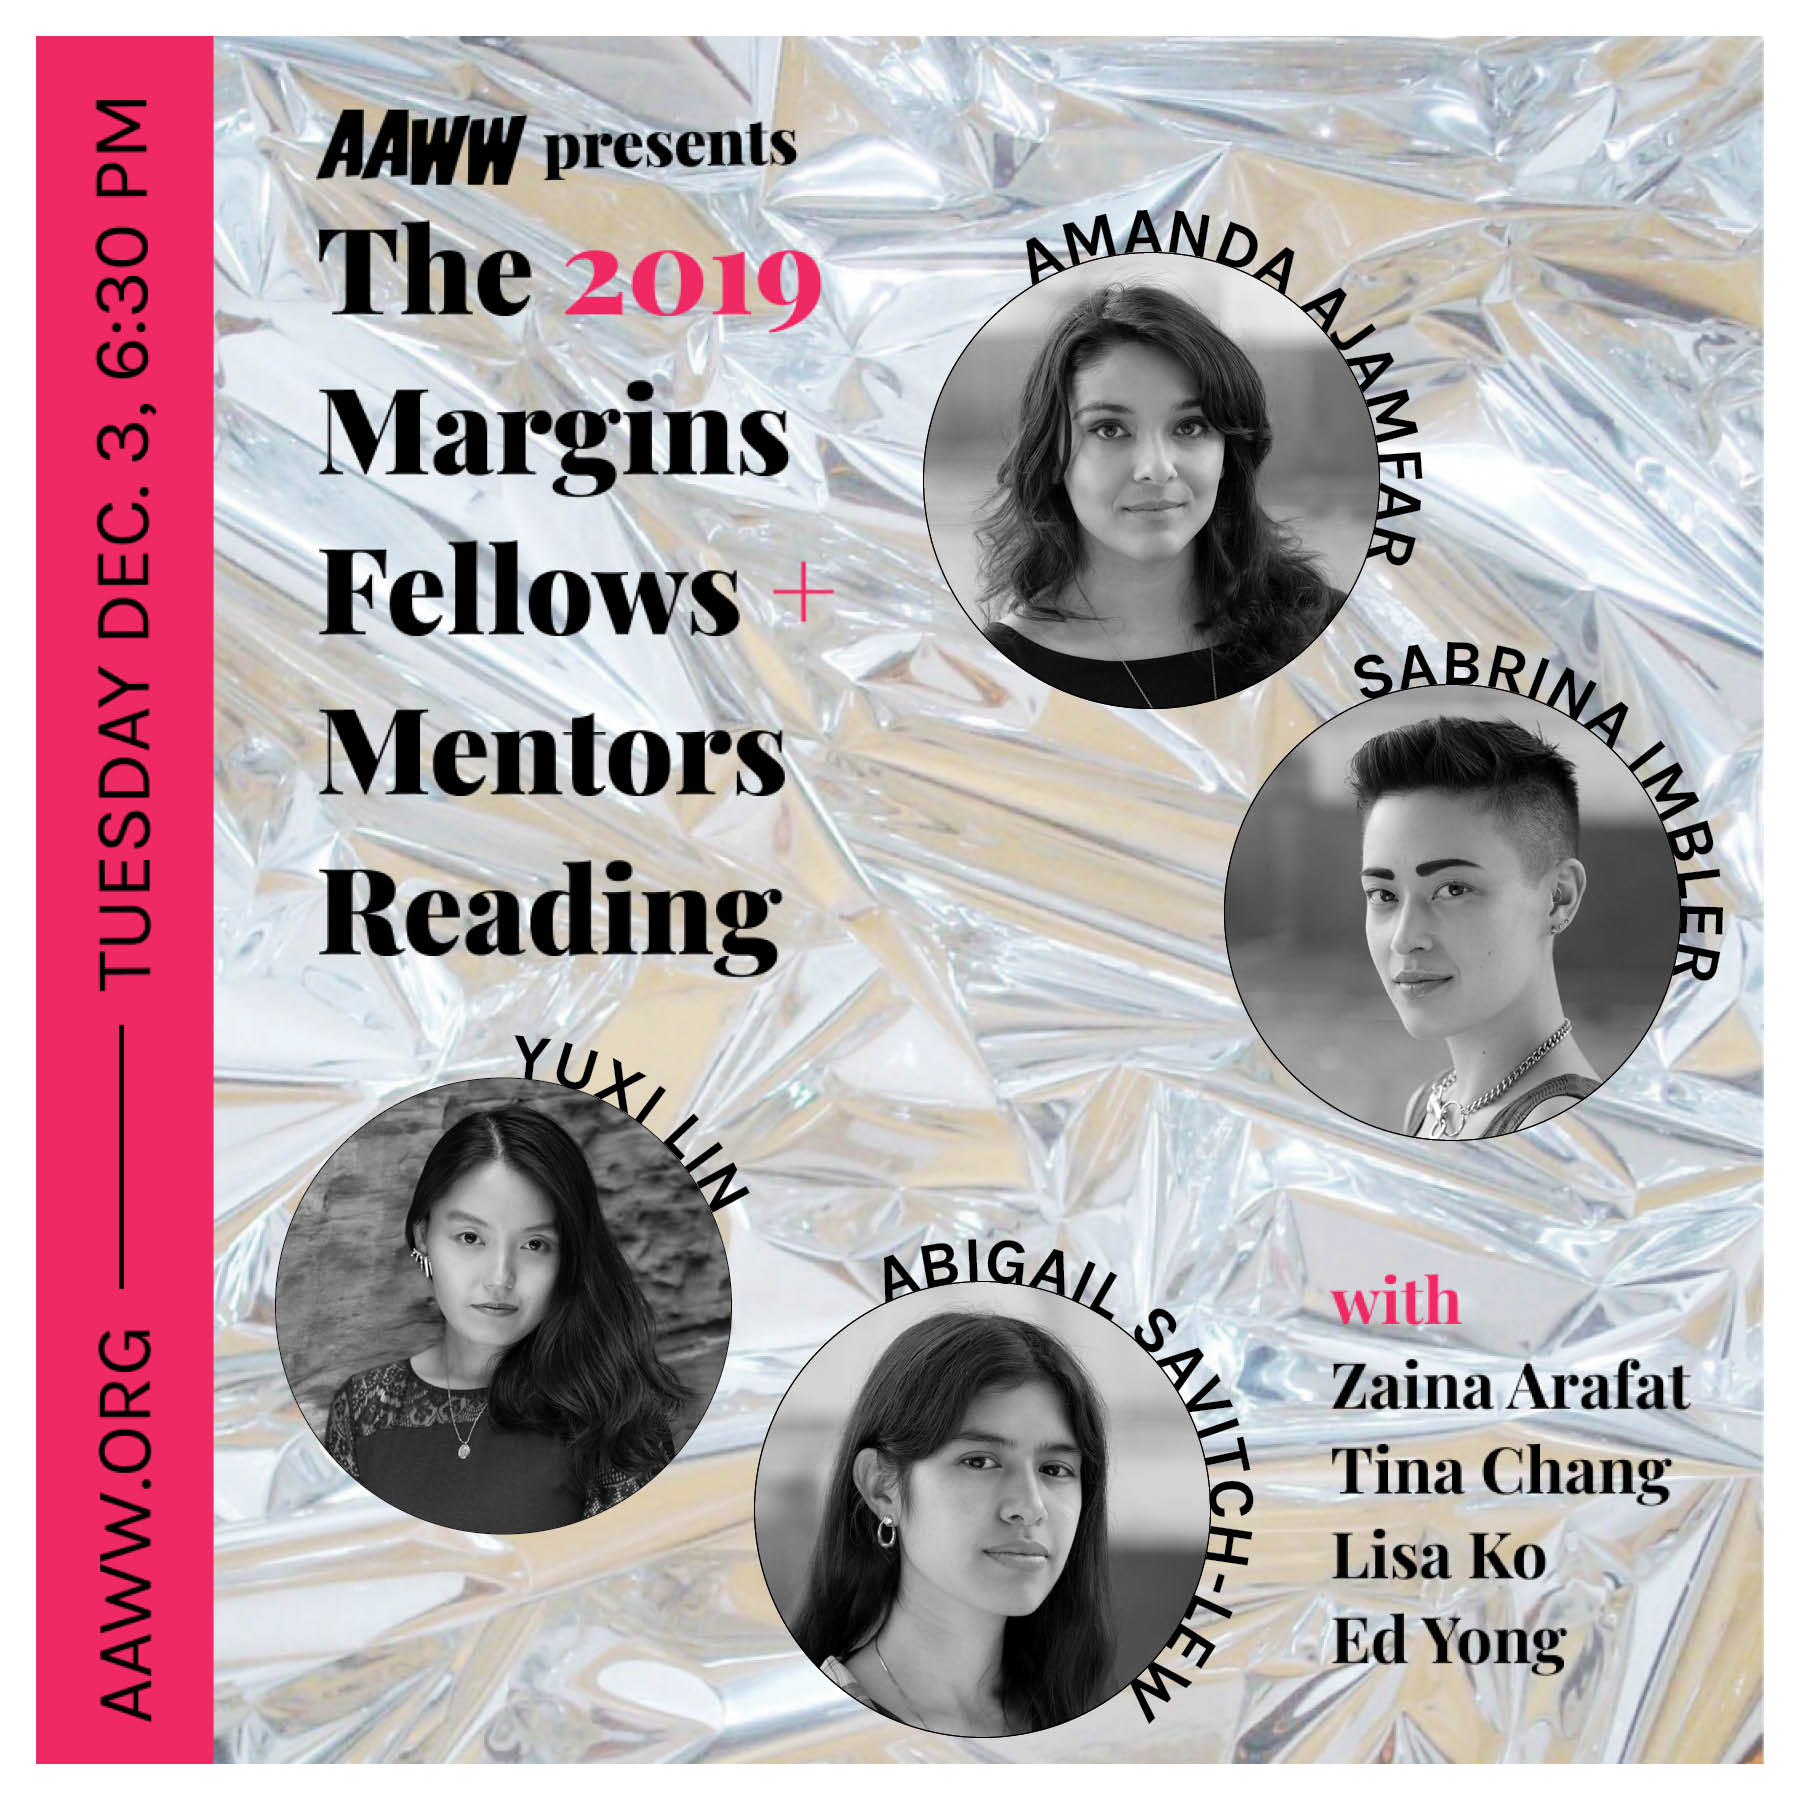 2019 Margins Fellows + Mentors Reading